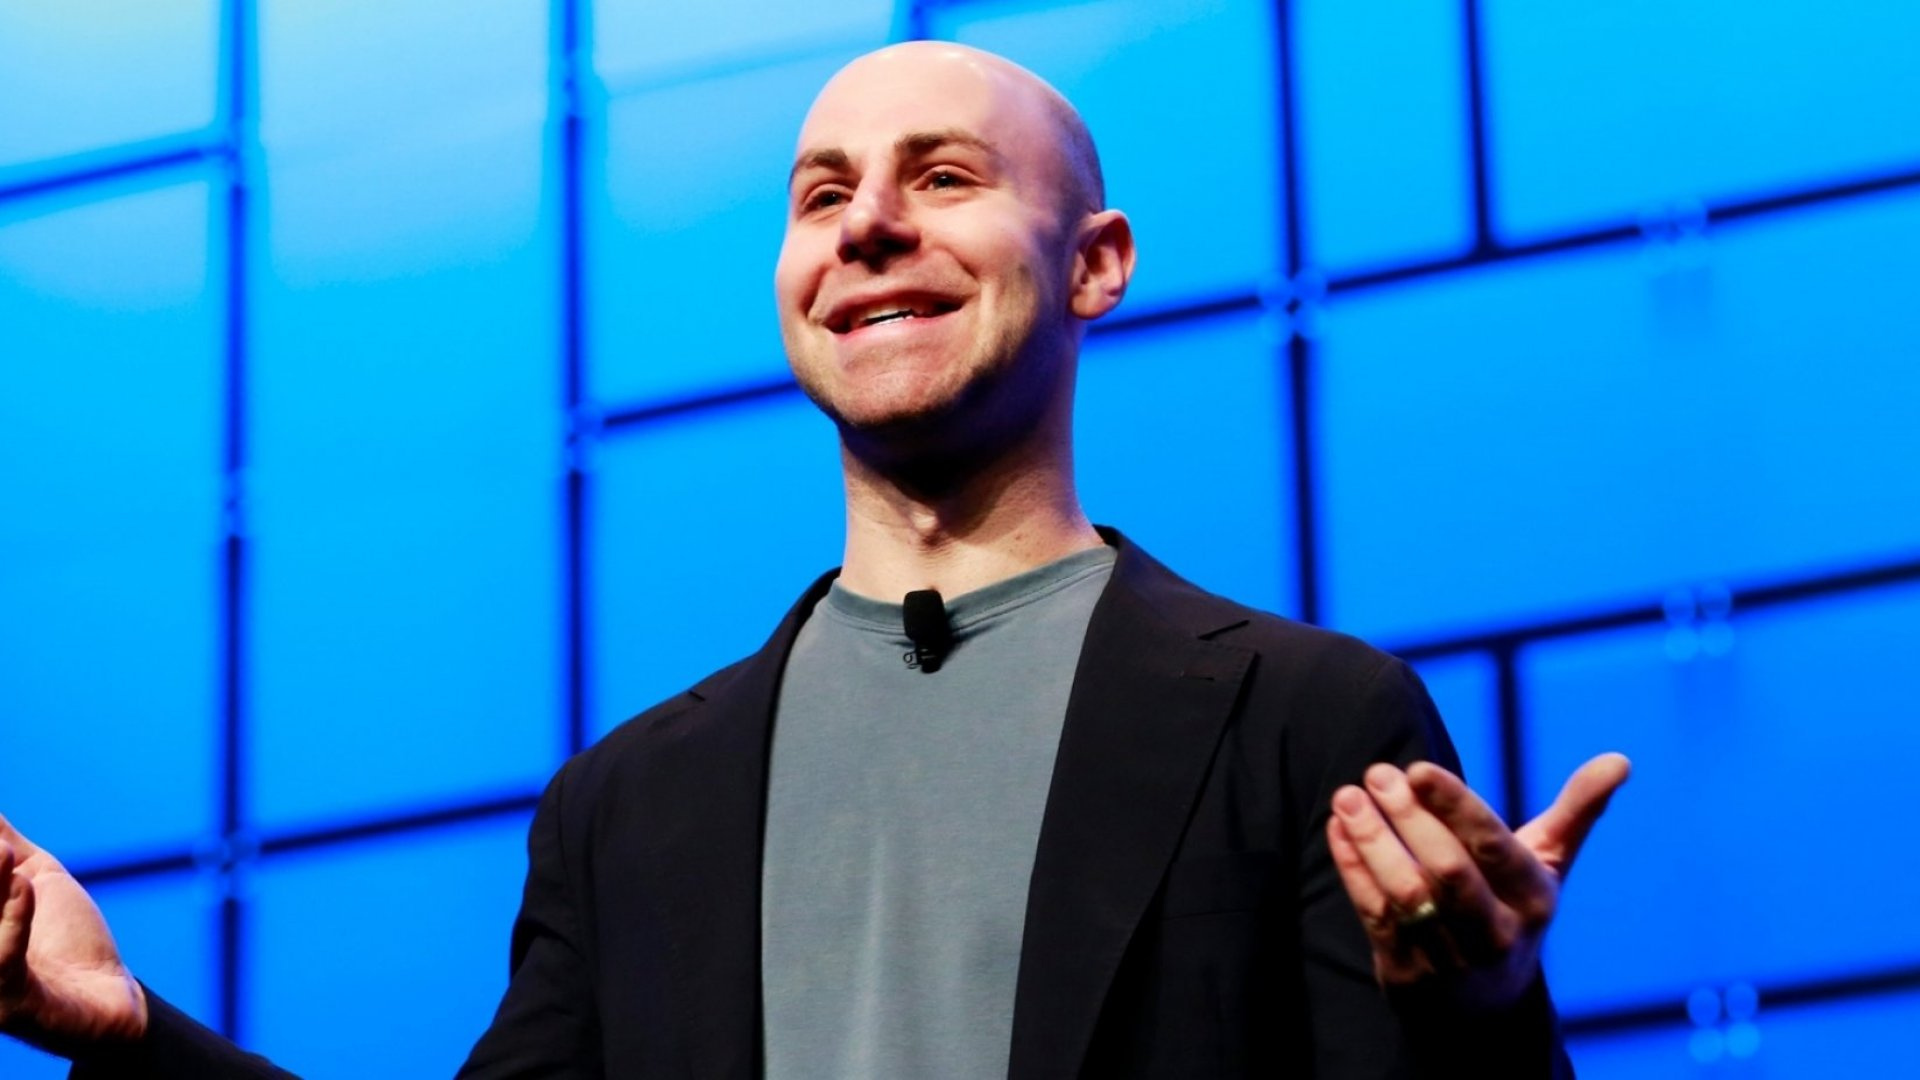 Adam Grant, best-selling author and professor at the Wharton School of the University of Pennsylvania. Grant has been called one of the world's 25 most influential management thinkers.